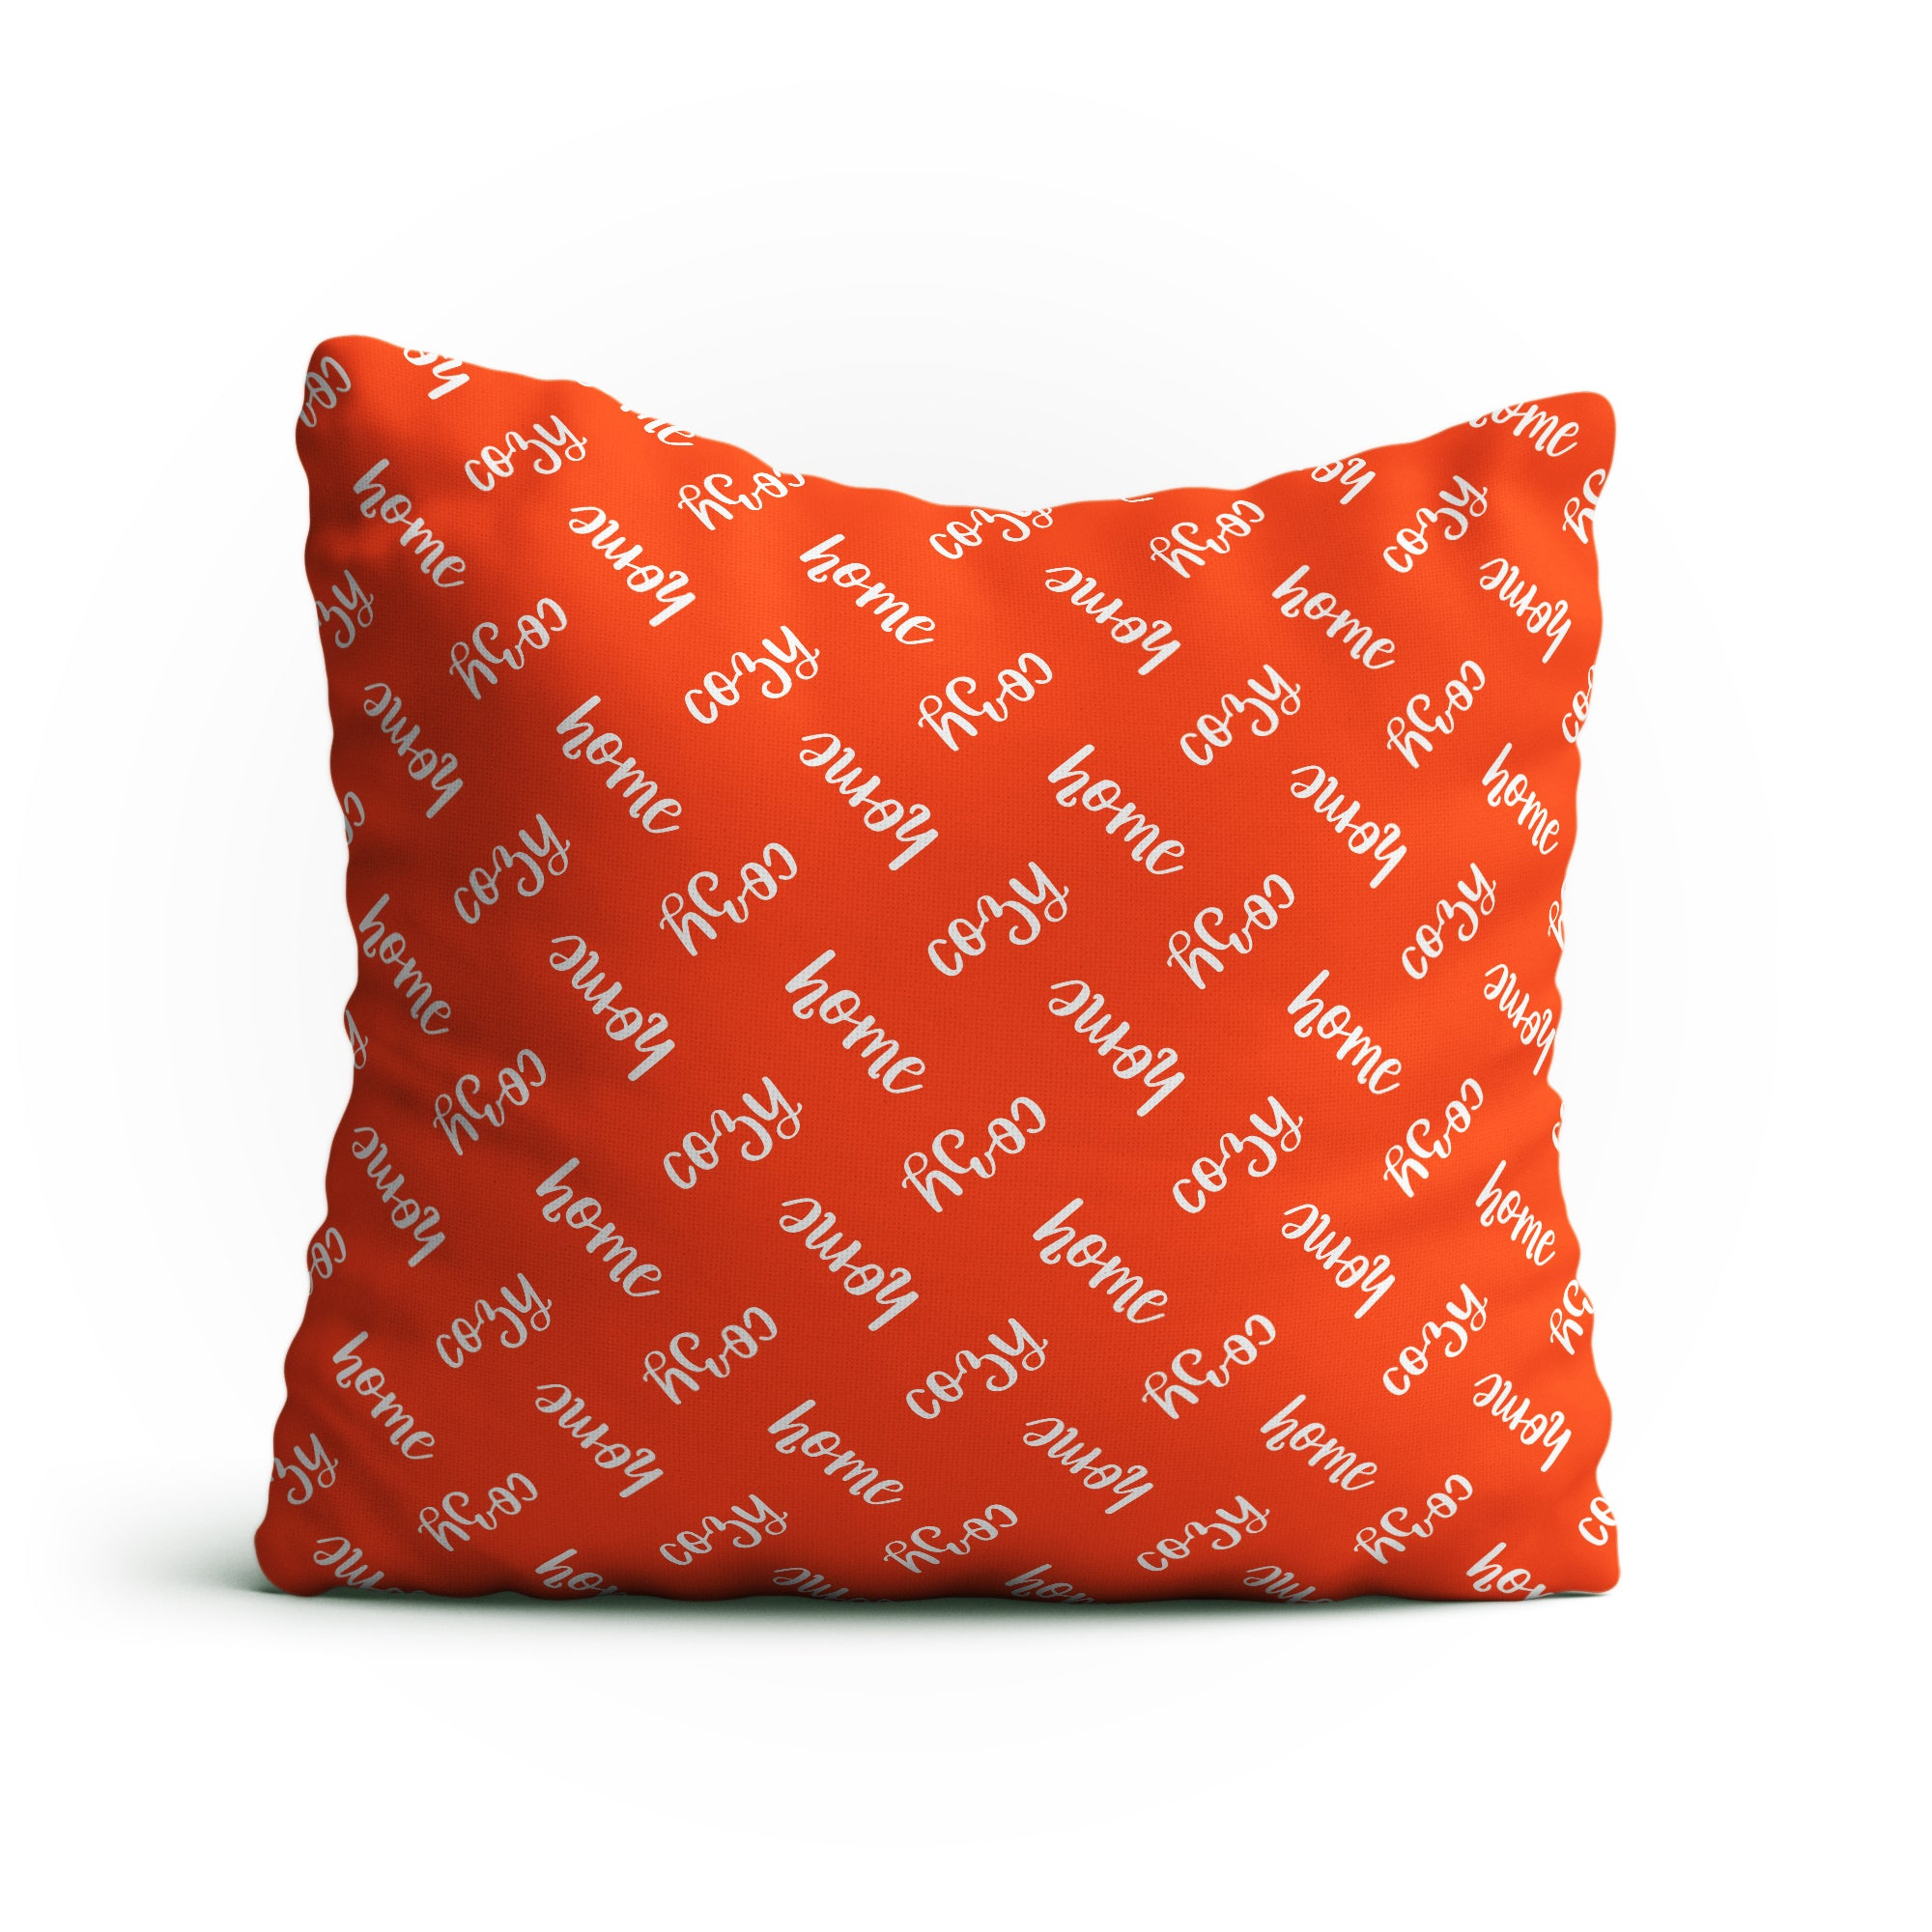 "Throw Pillow -""Cozy Home"" Text Pattern Double-Sided 18x18 Square Pillow Cover with Insert for Couch, Sofa or Bed ( Orange )"